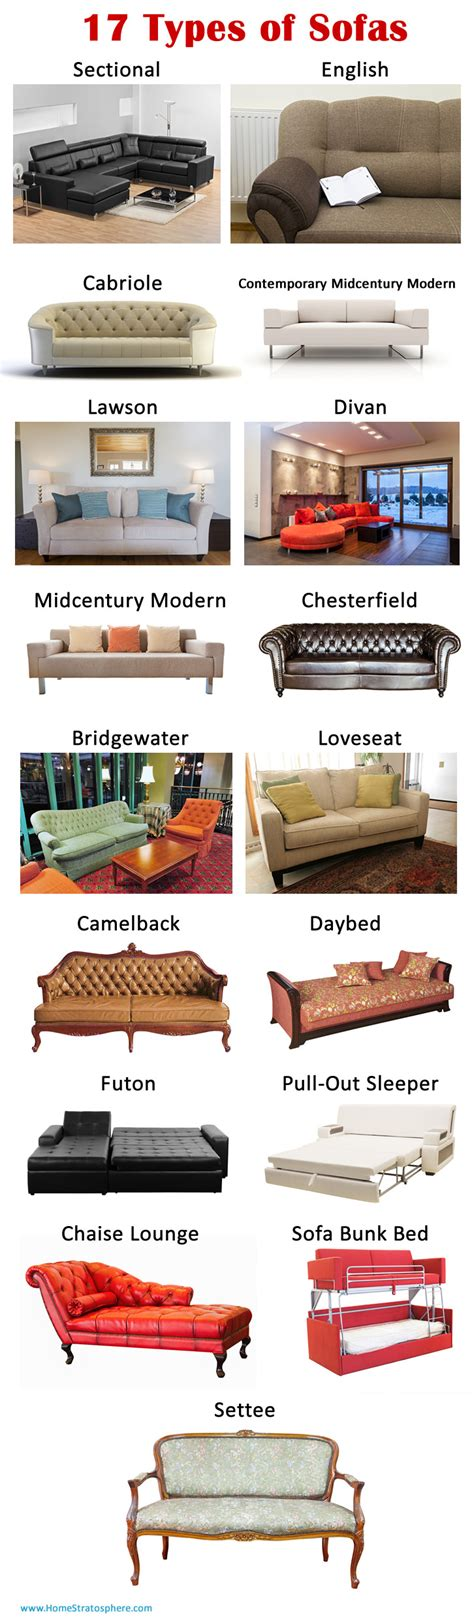 17 Types Of Sofas & Couches Explained (with Pictures. Neutral Living Room Decor Pinterest. Decorating Living Room Kitchen Combo. Living Room Storage Space. Living Room At The W Hotel Miami. Livingroom Design Ideas. Living Room Incident. Living Room With Green Accents. Living Room Colors Options